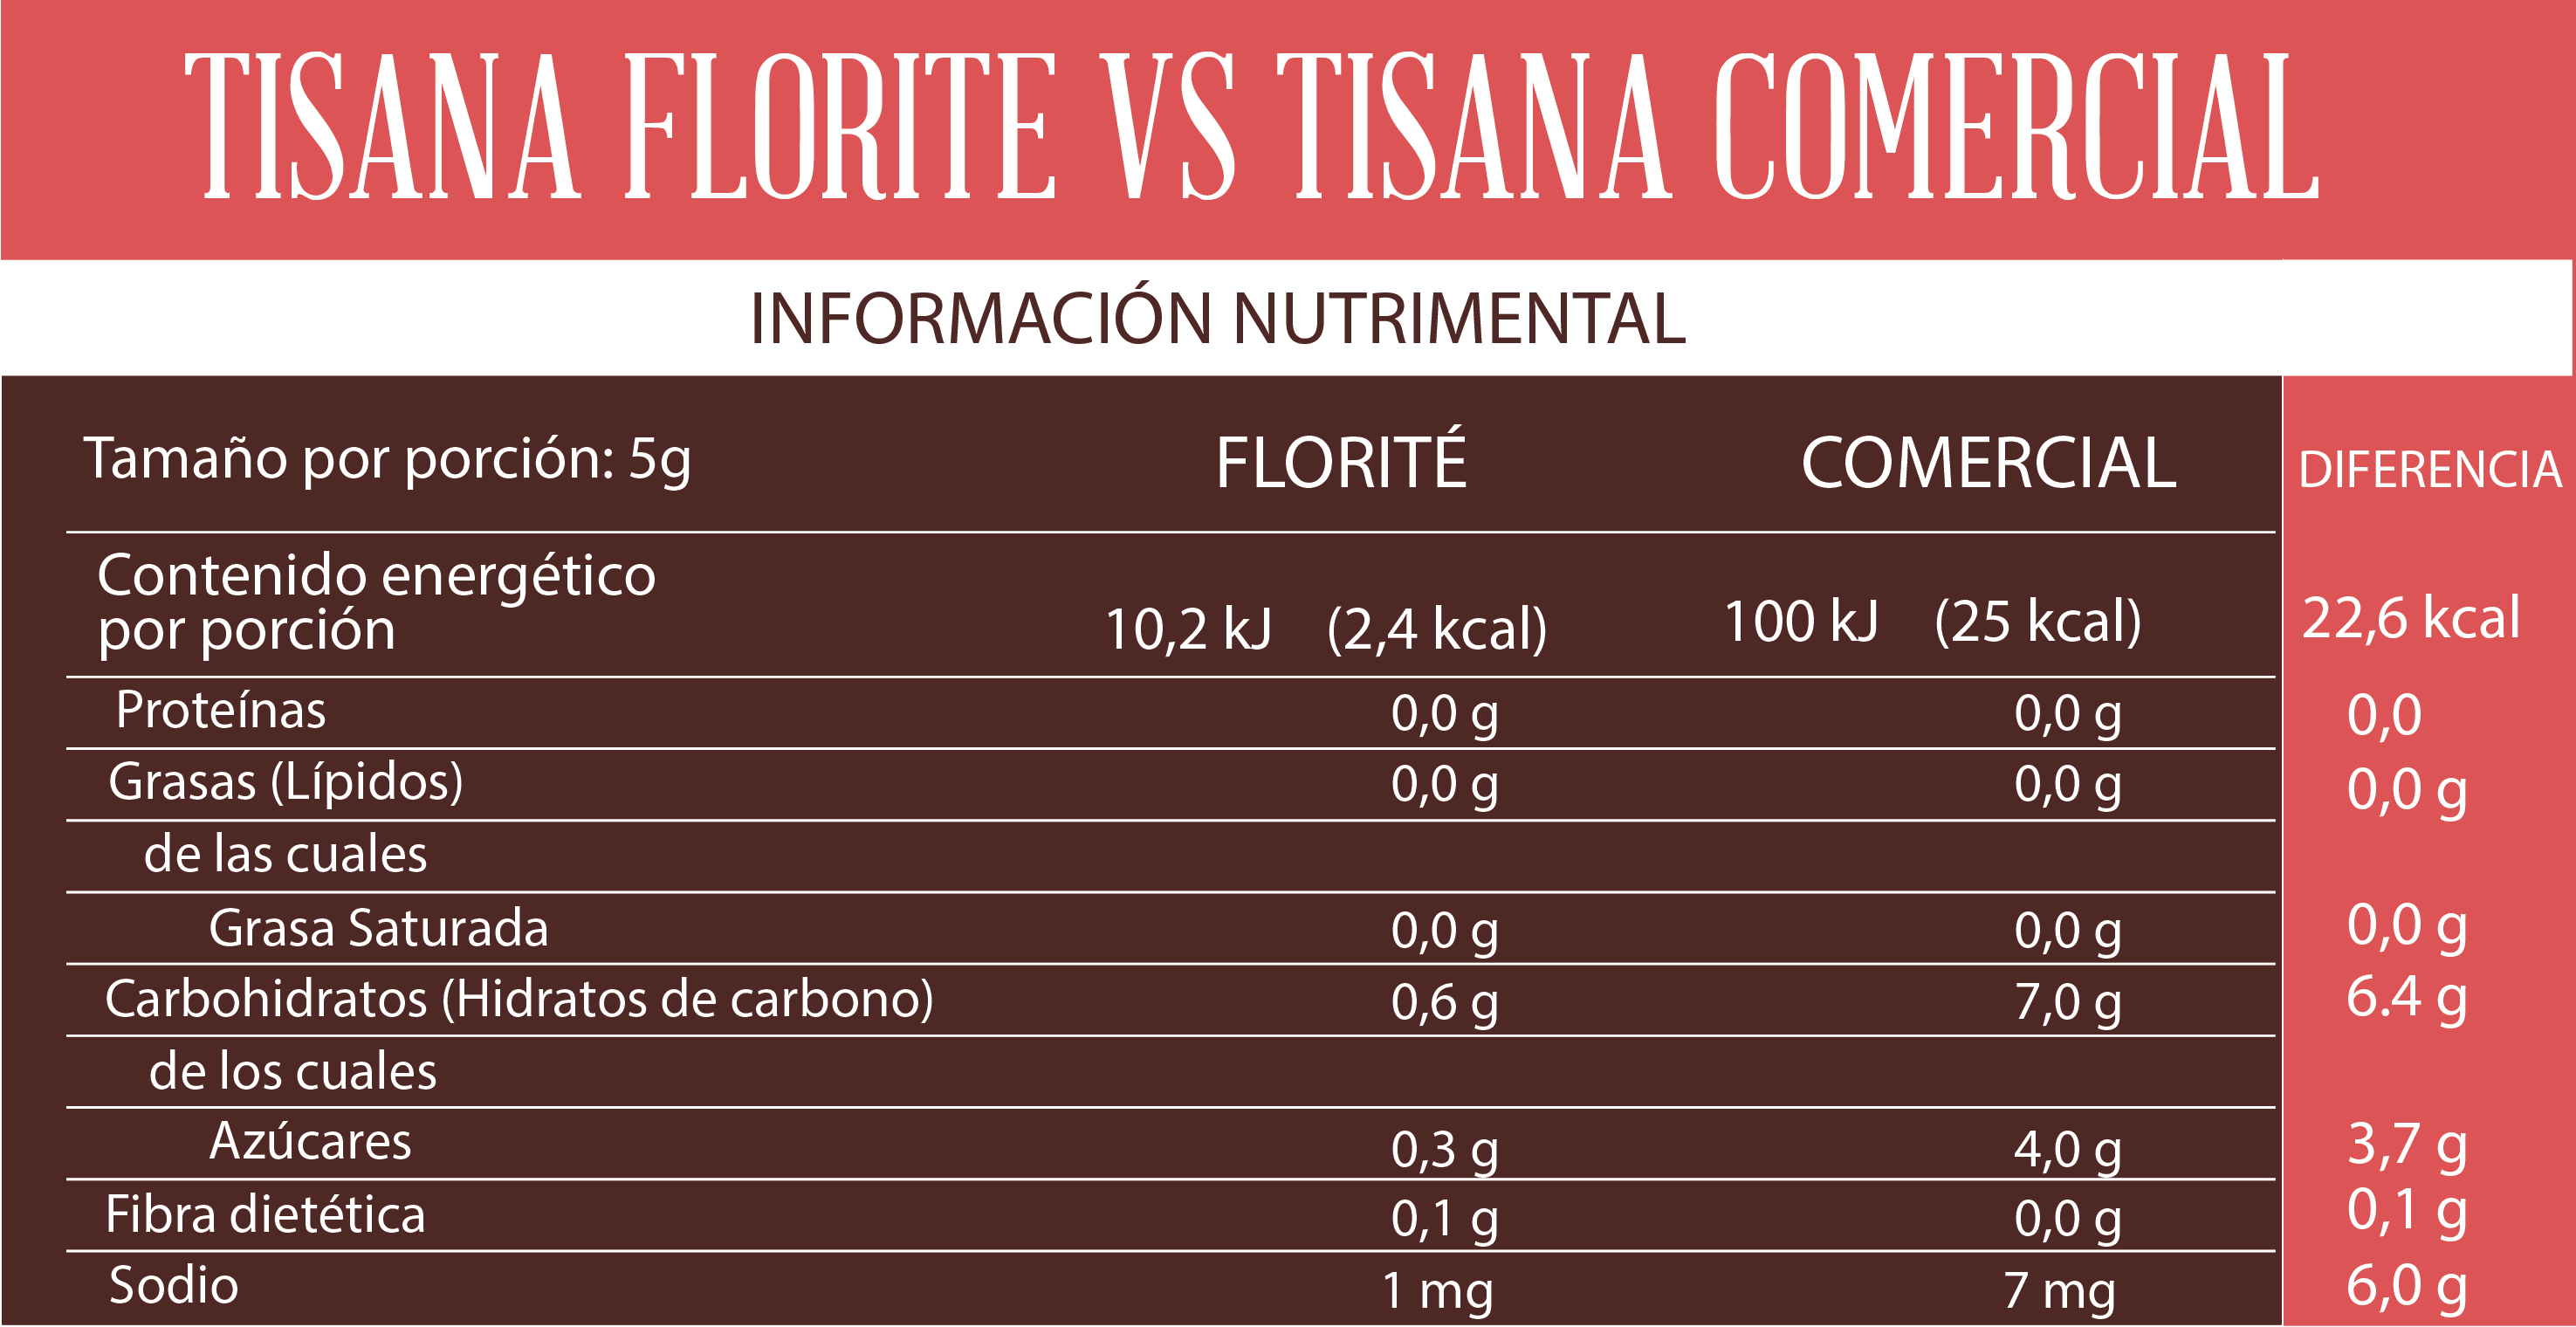 Tabla nutrimental de tisanas